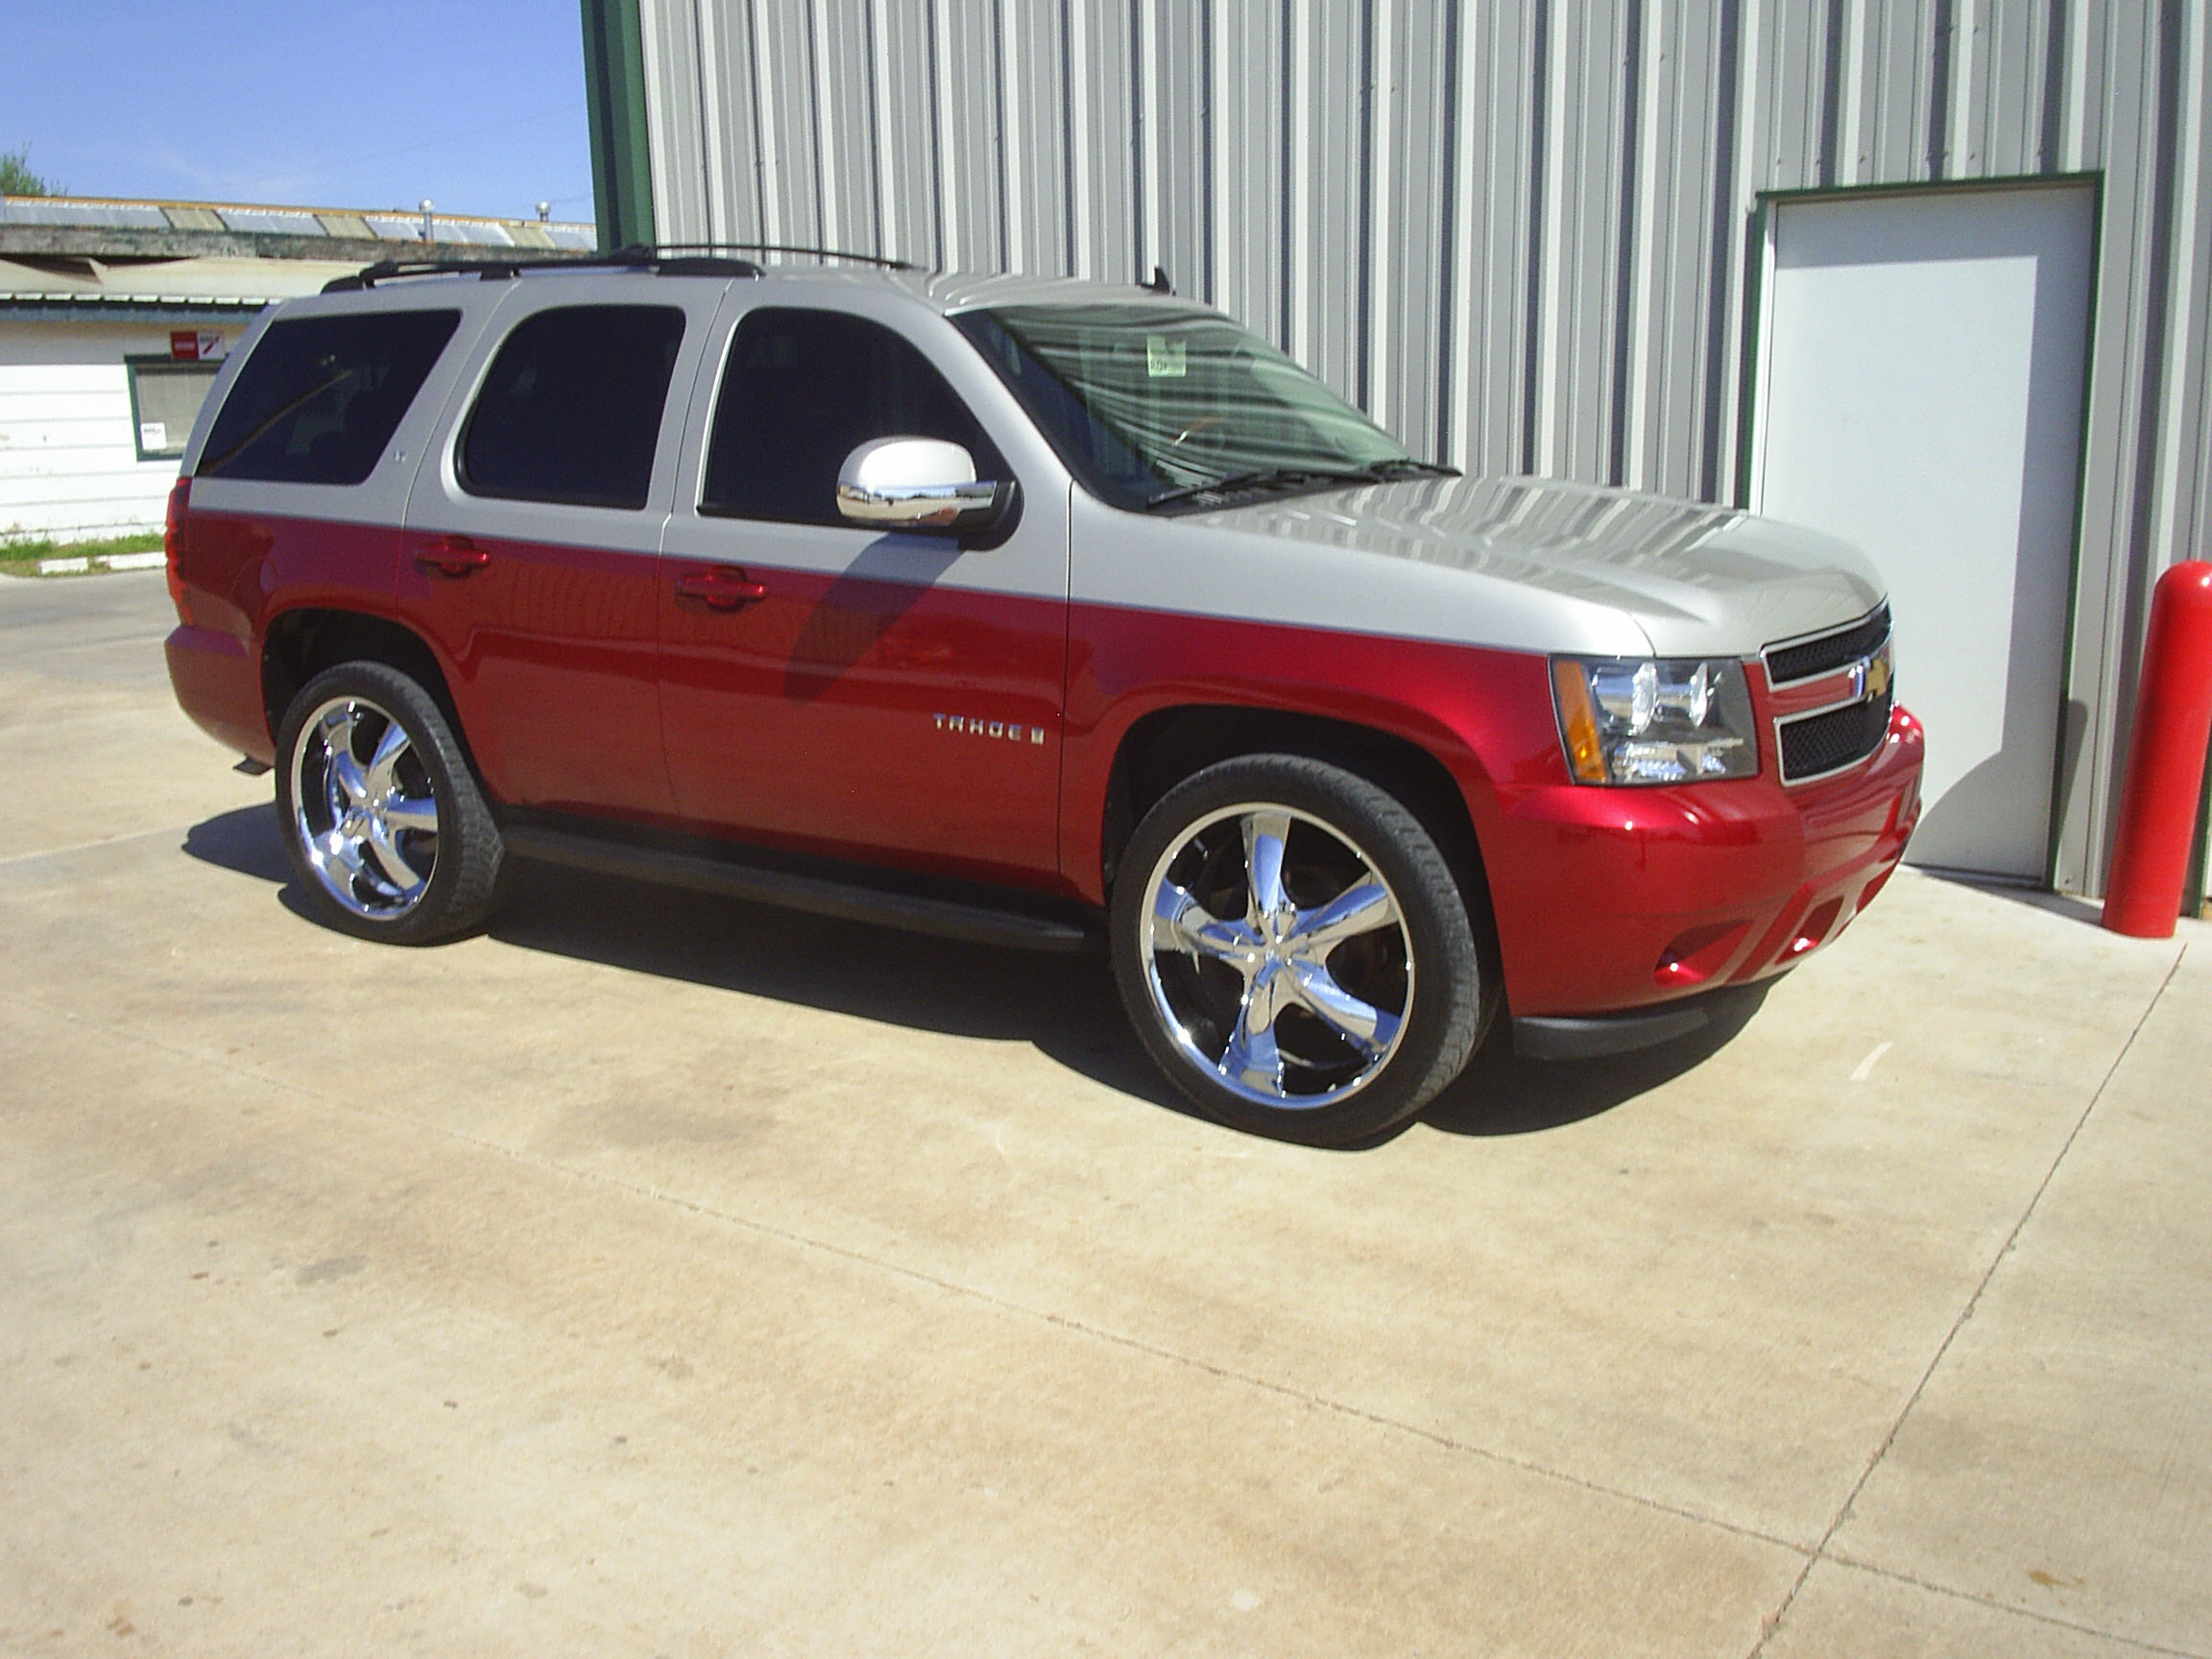 Custom two-tone Tahoe by Body Worx of Guthrie